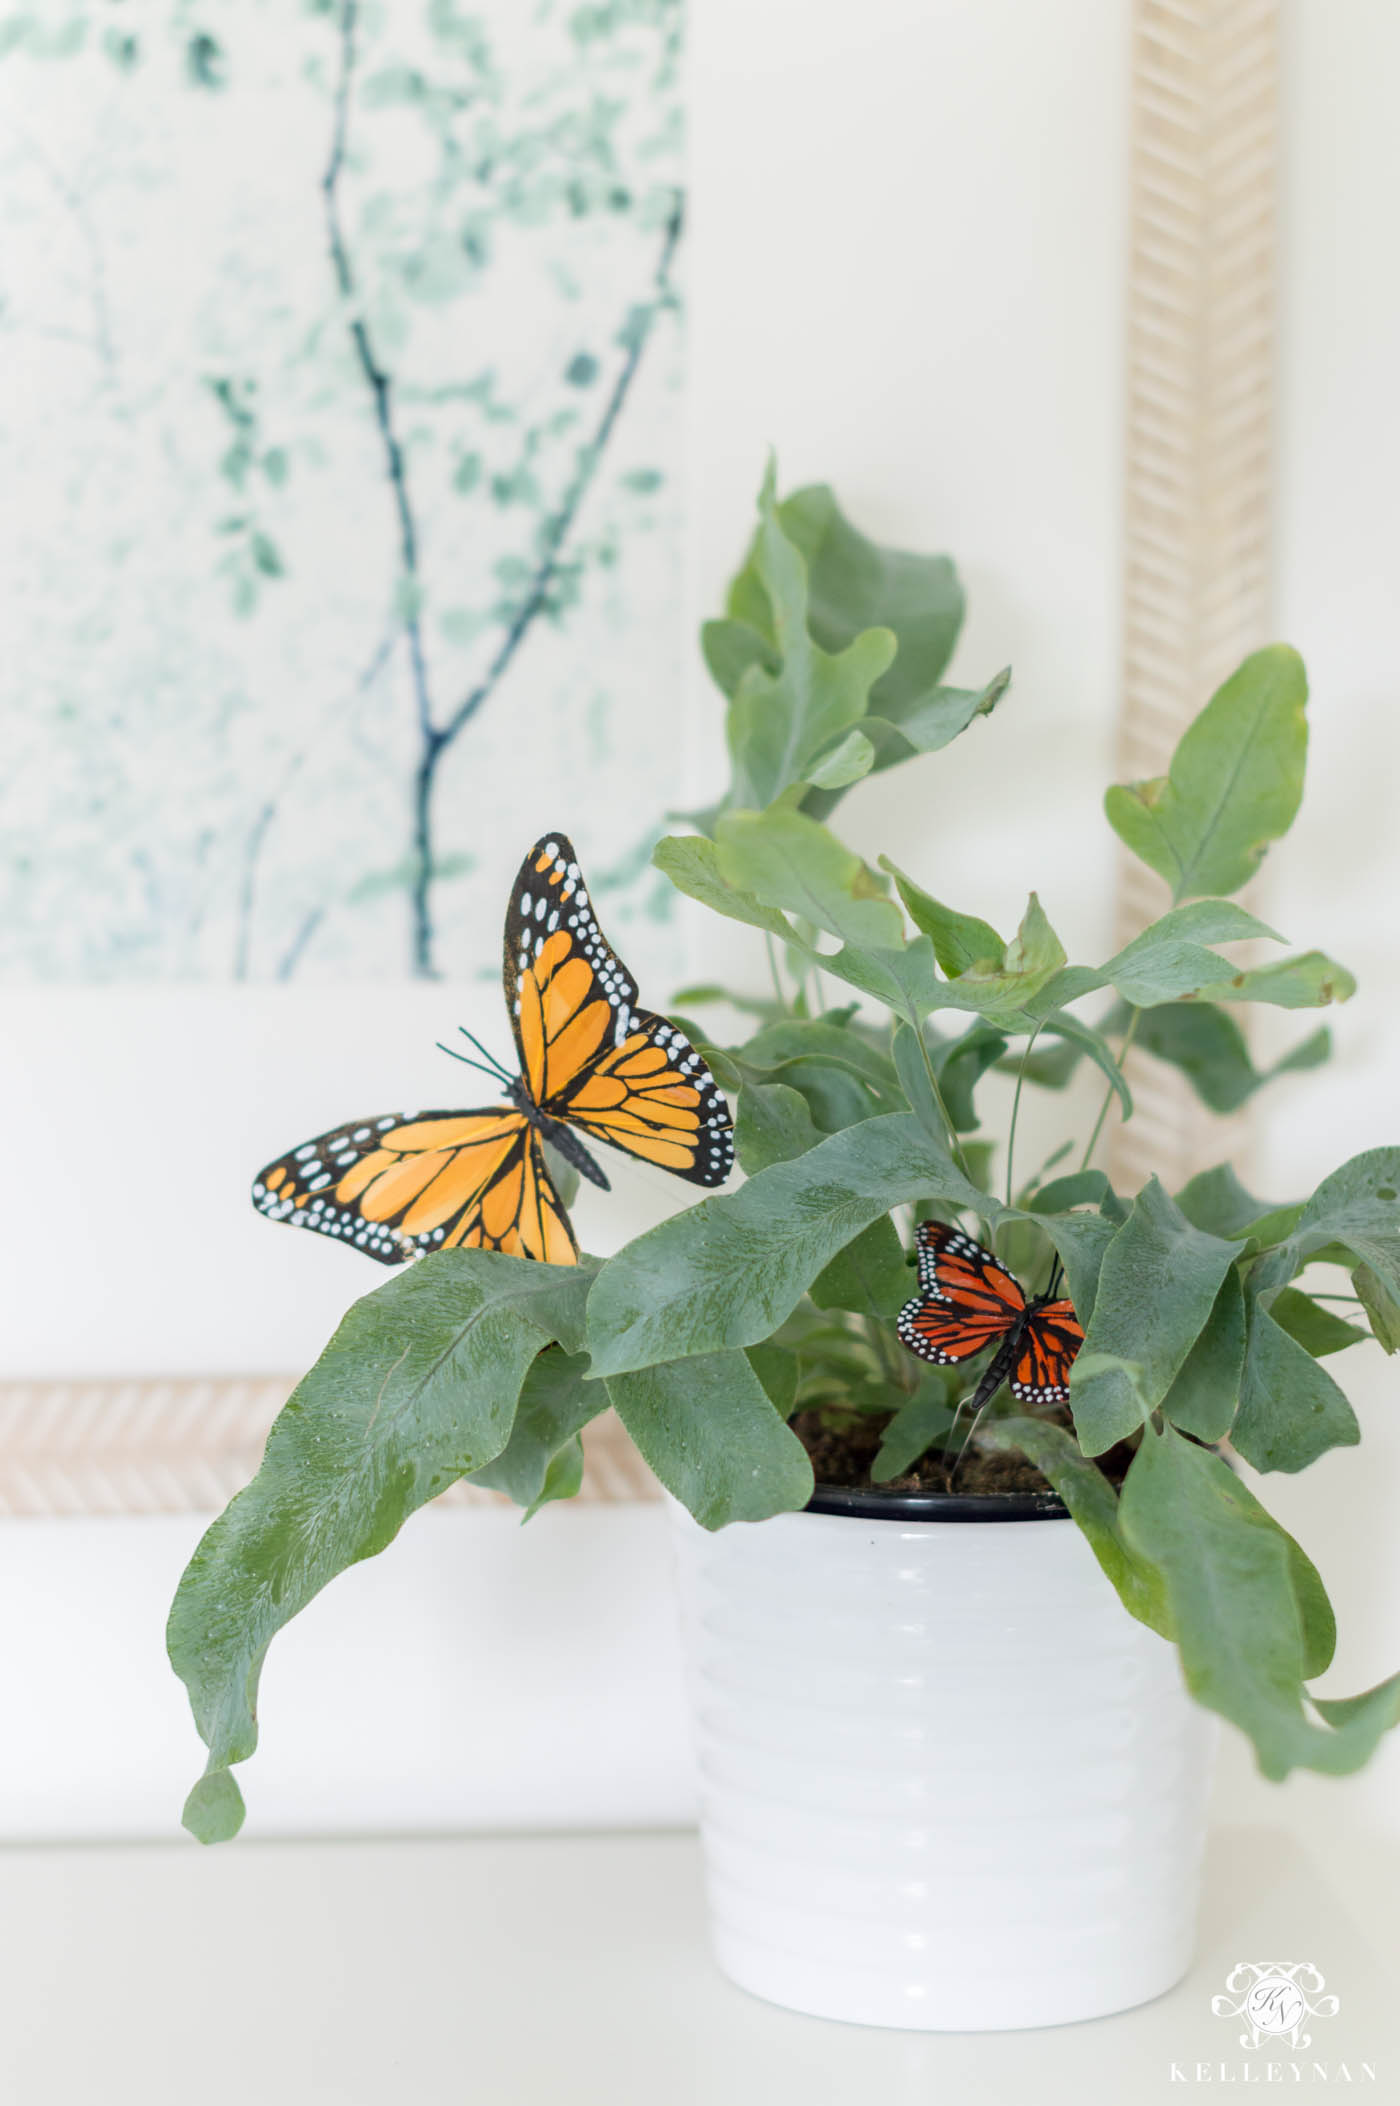 Plant idea for kids with butterflies